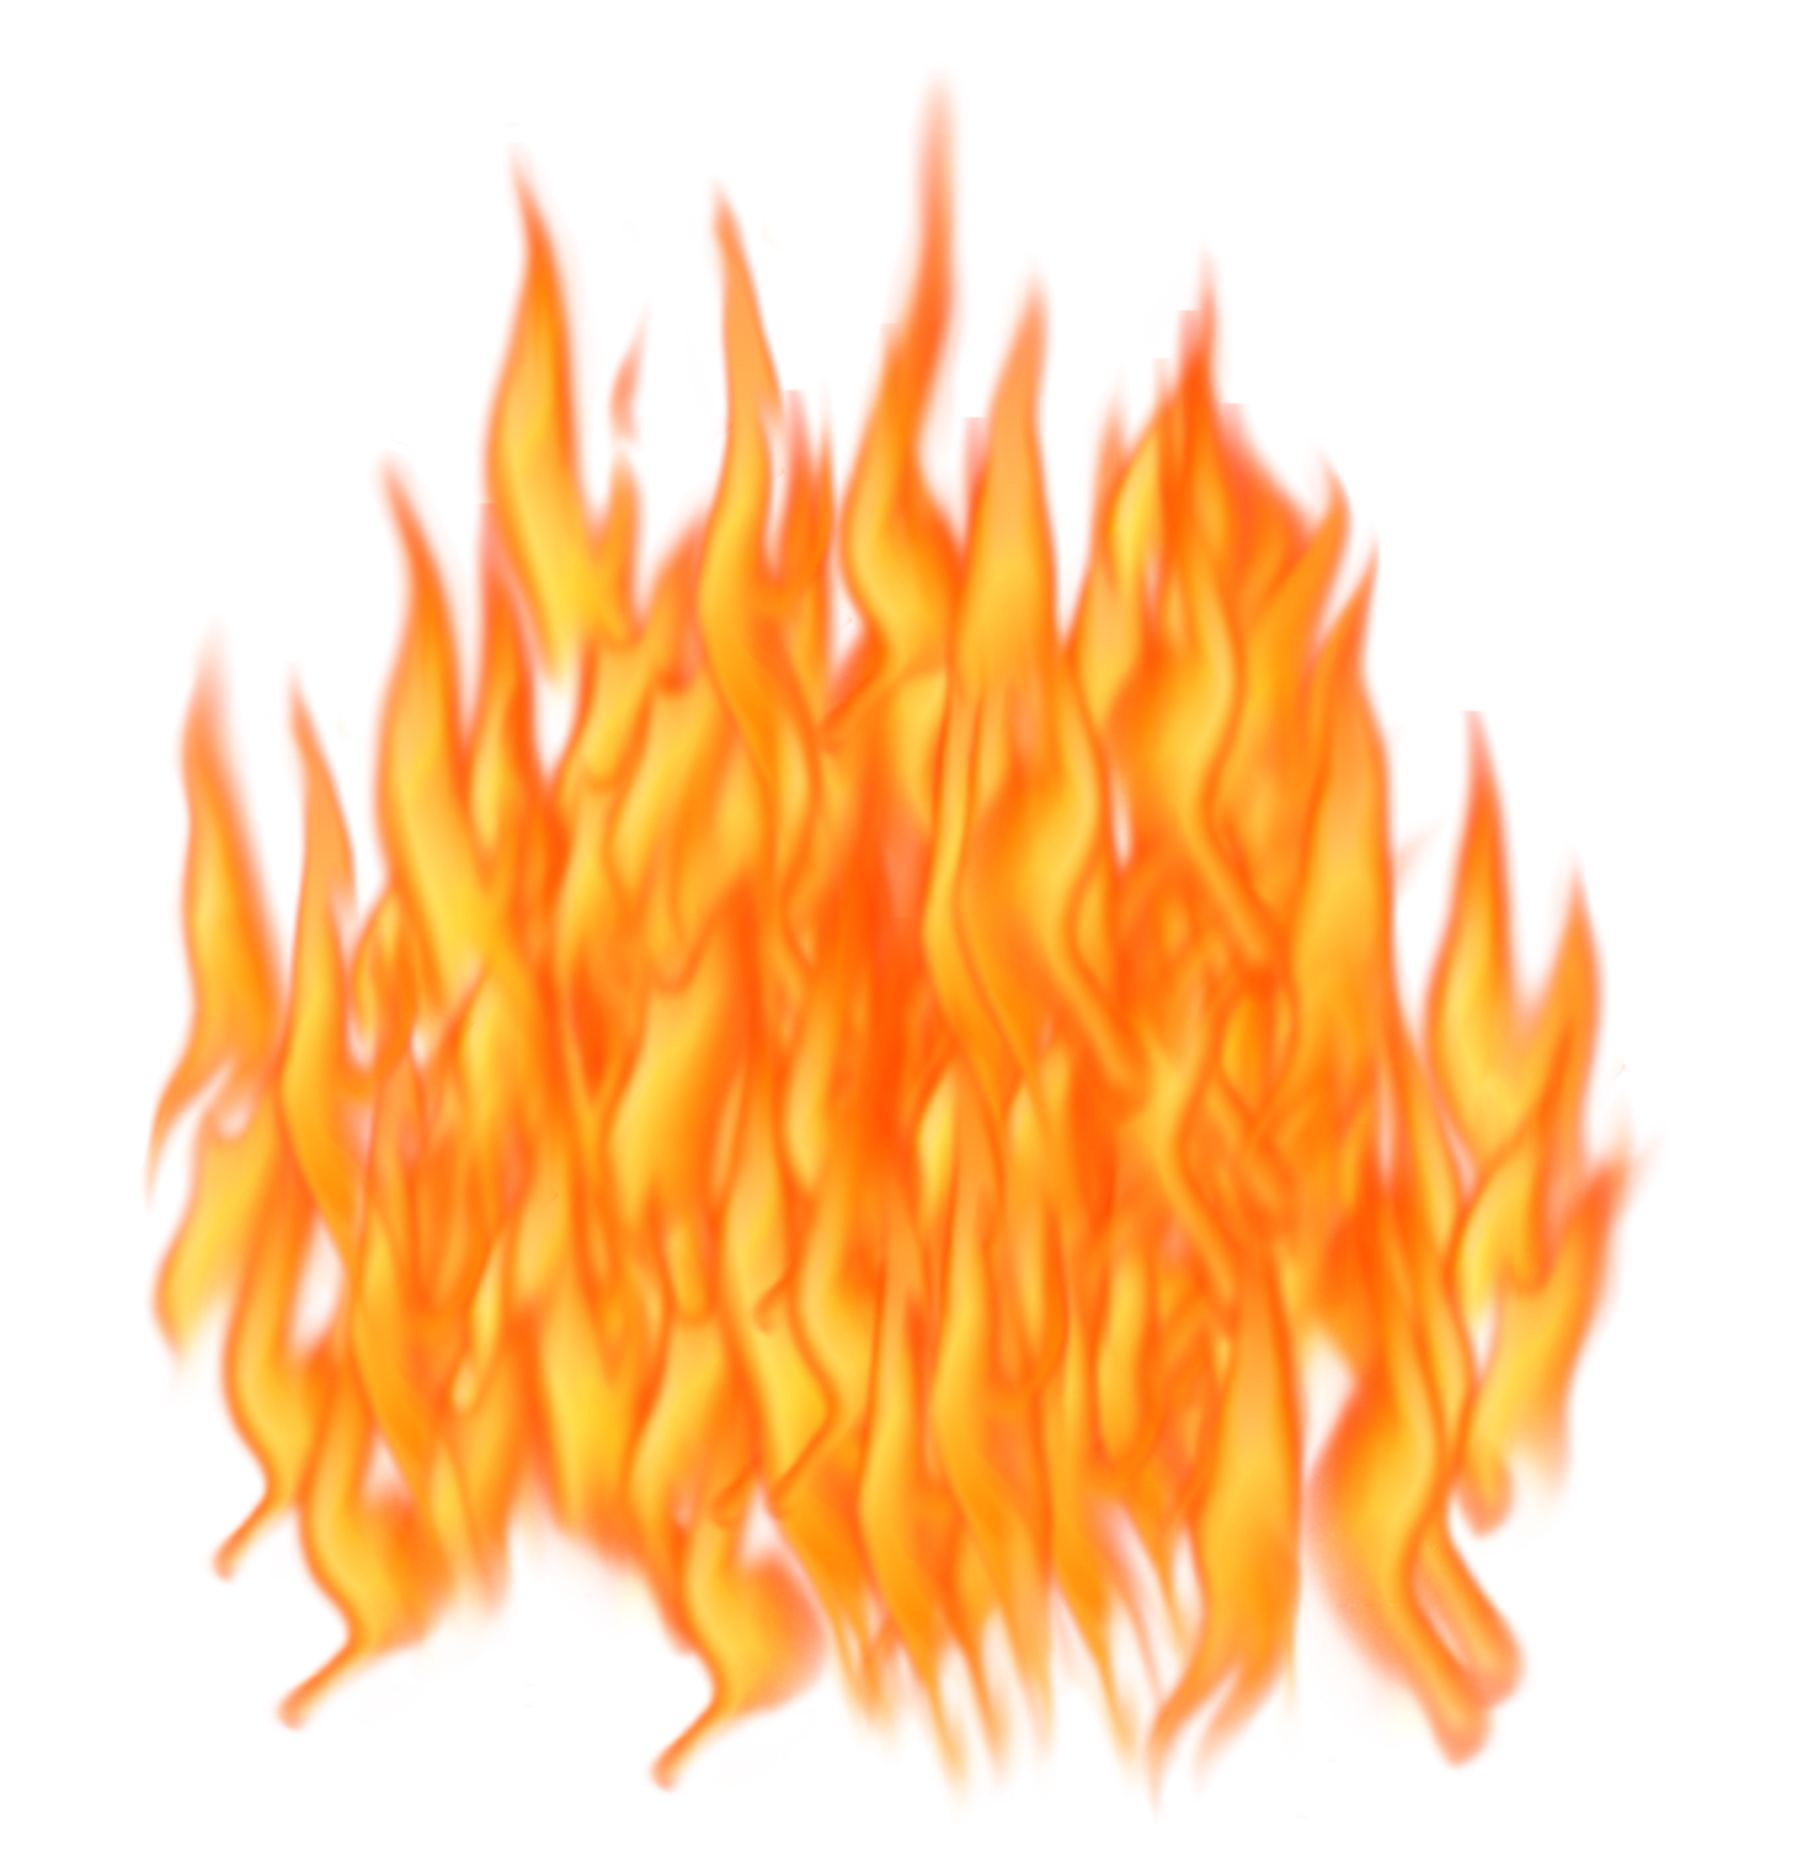 Flames png image gallery. Heat clipart transparent background